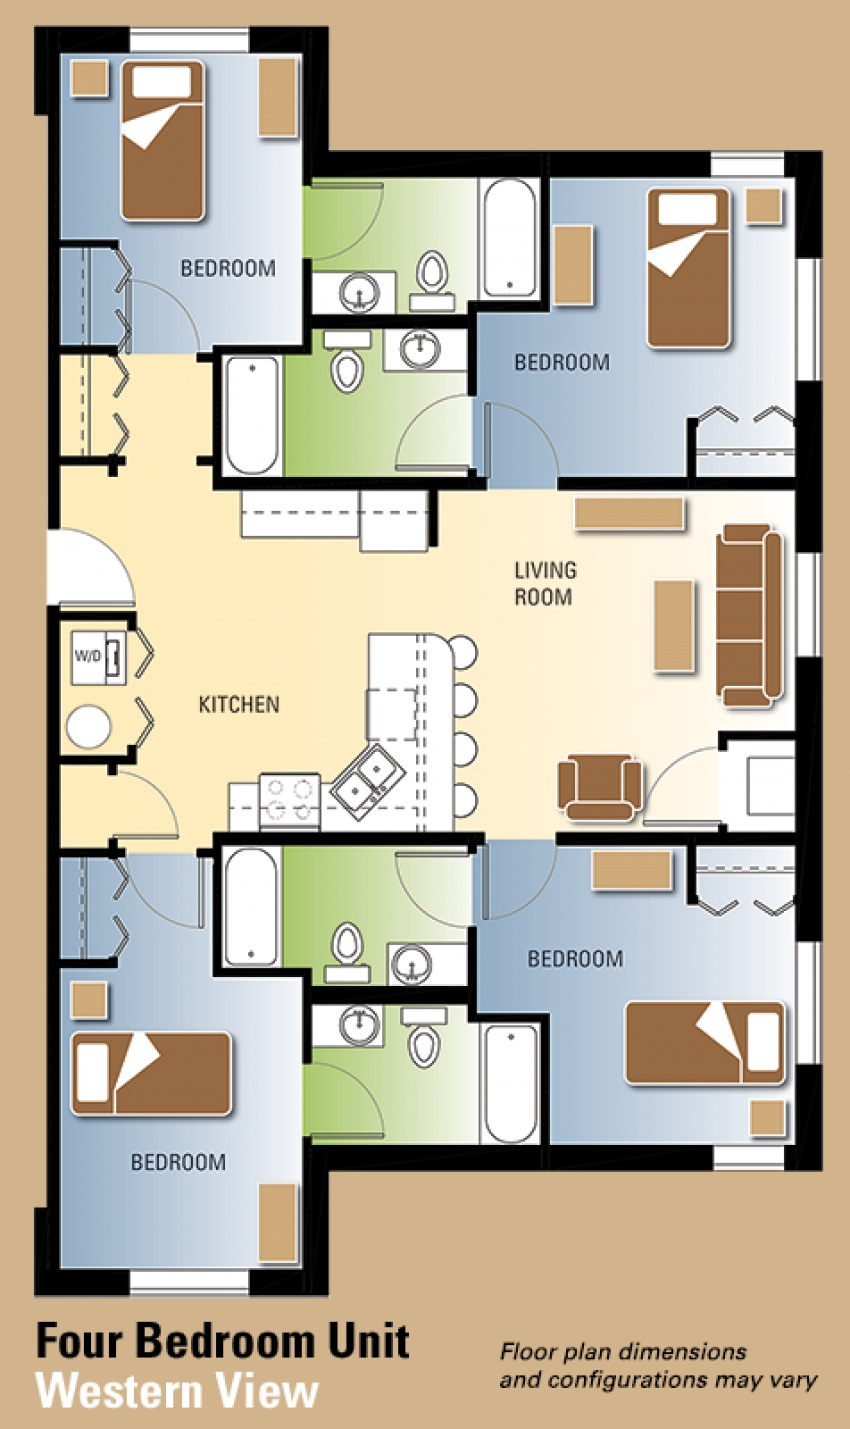 Western View Floor Plans Residence Life Western Michigan - View floor plans